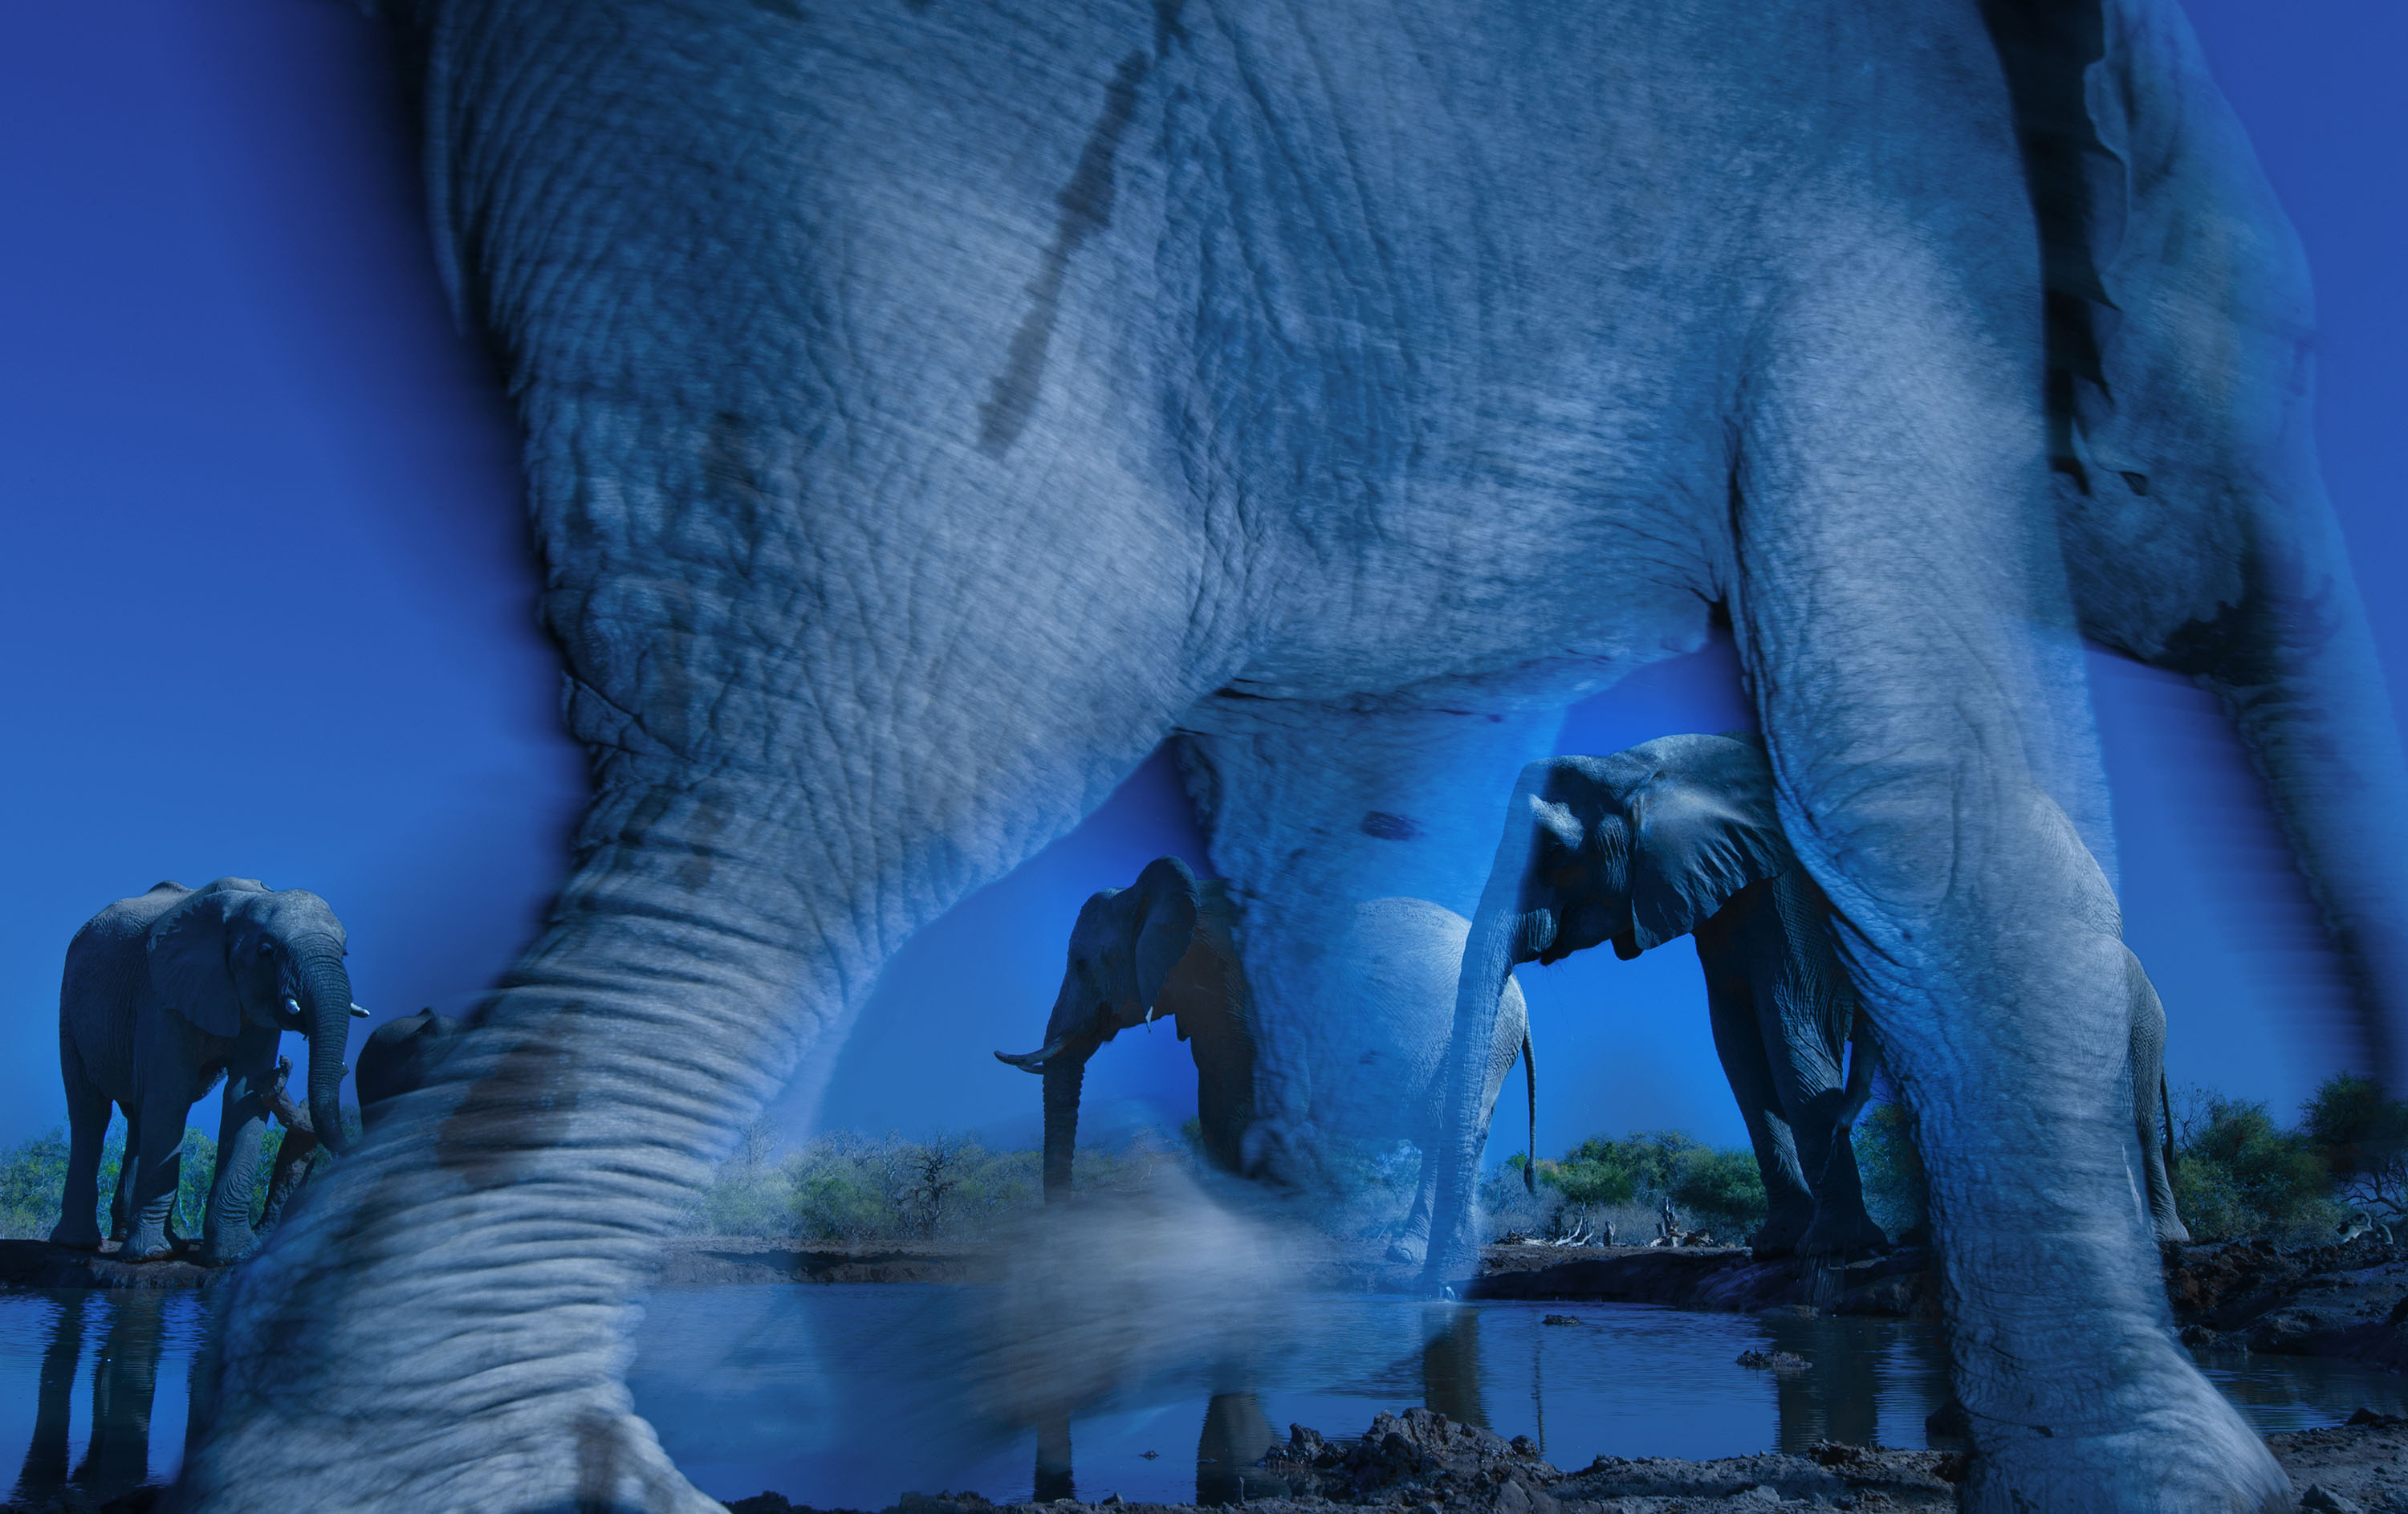 © Greg du Toit / Wildlife Photographer of the Year 2013